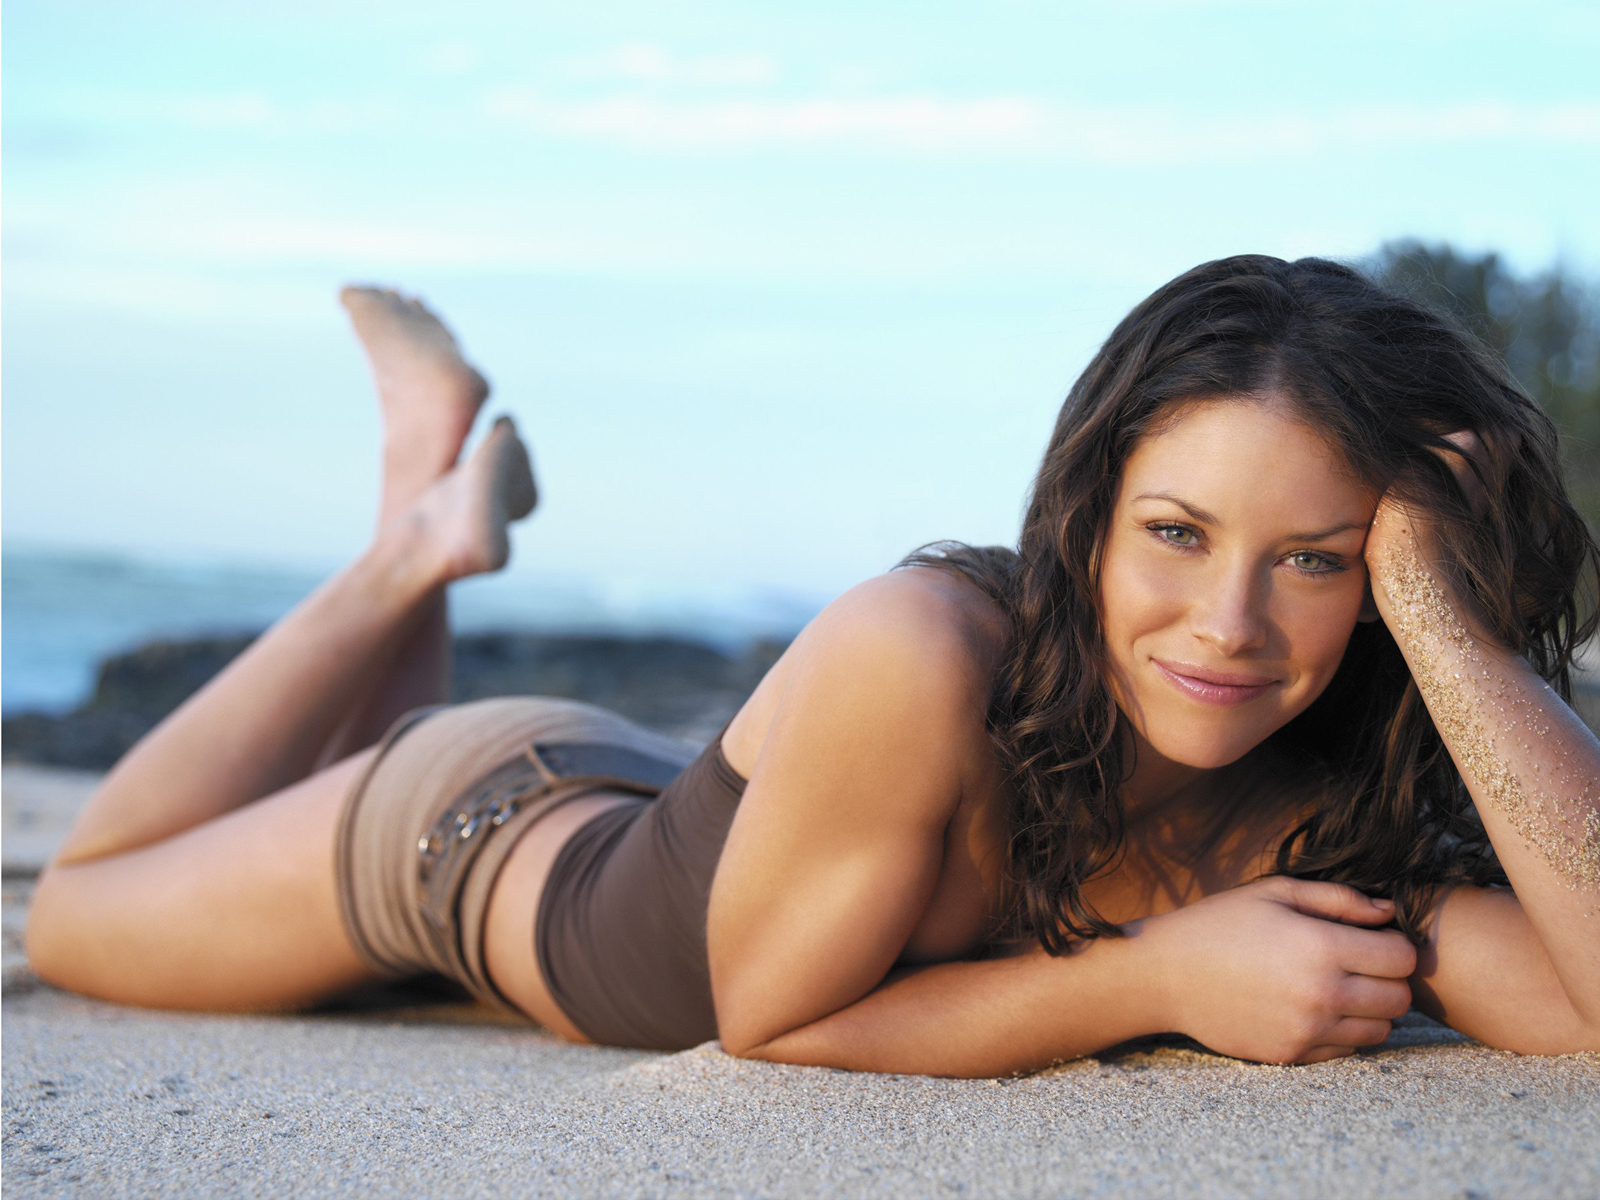 evangeline lilly lost hot